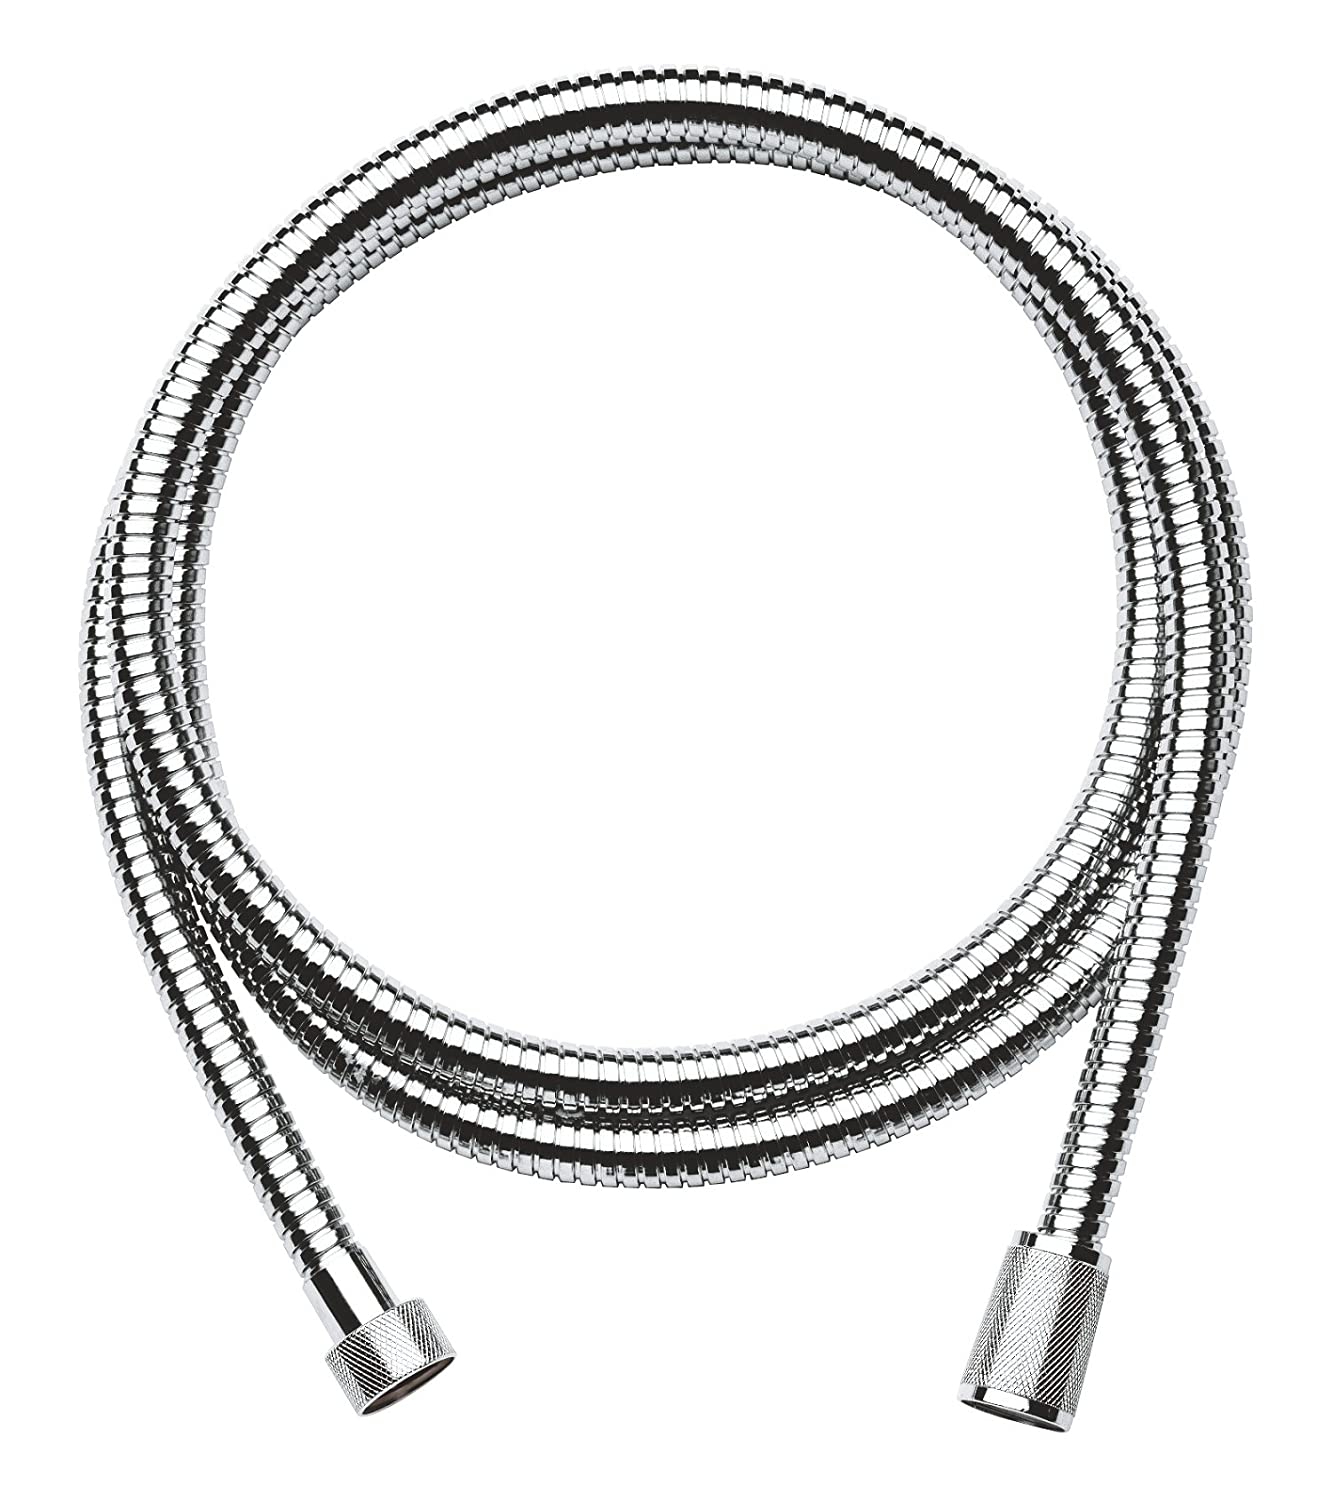 GROHE Relexa Ultra-Flexible Metal Hose, Silver, 28139000